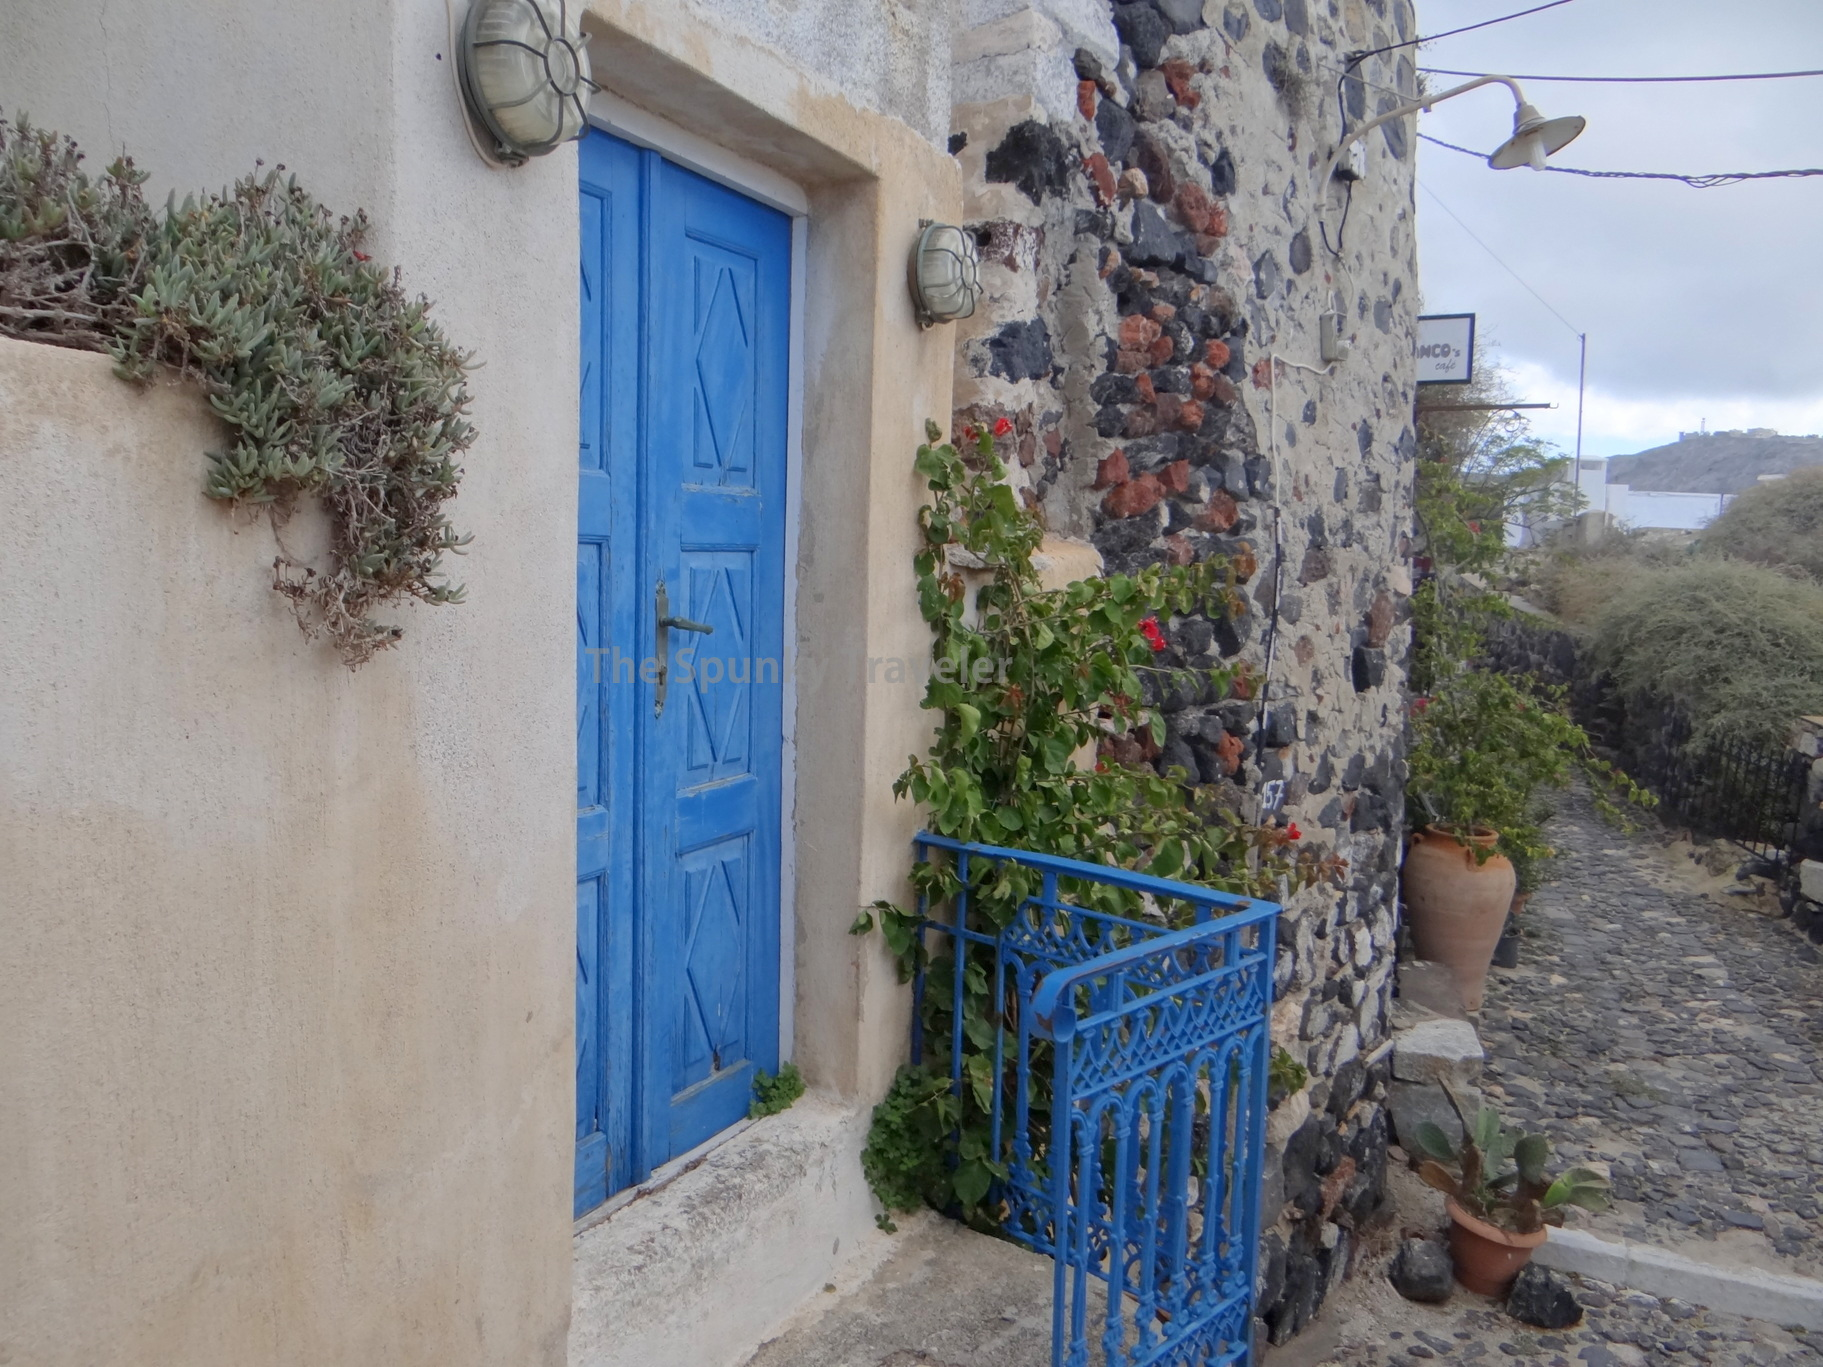 Streets of Pyrgos village